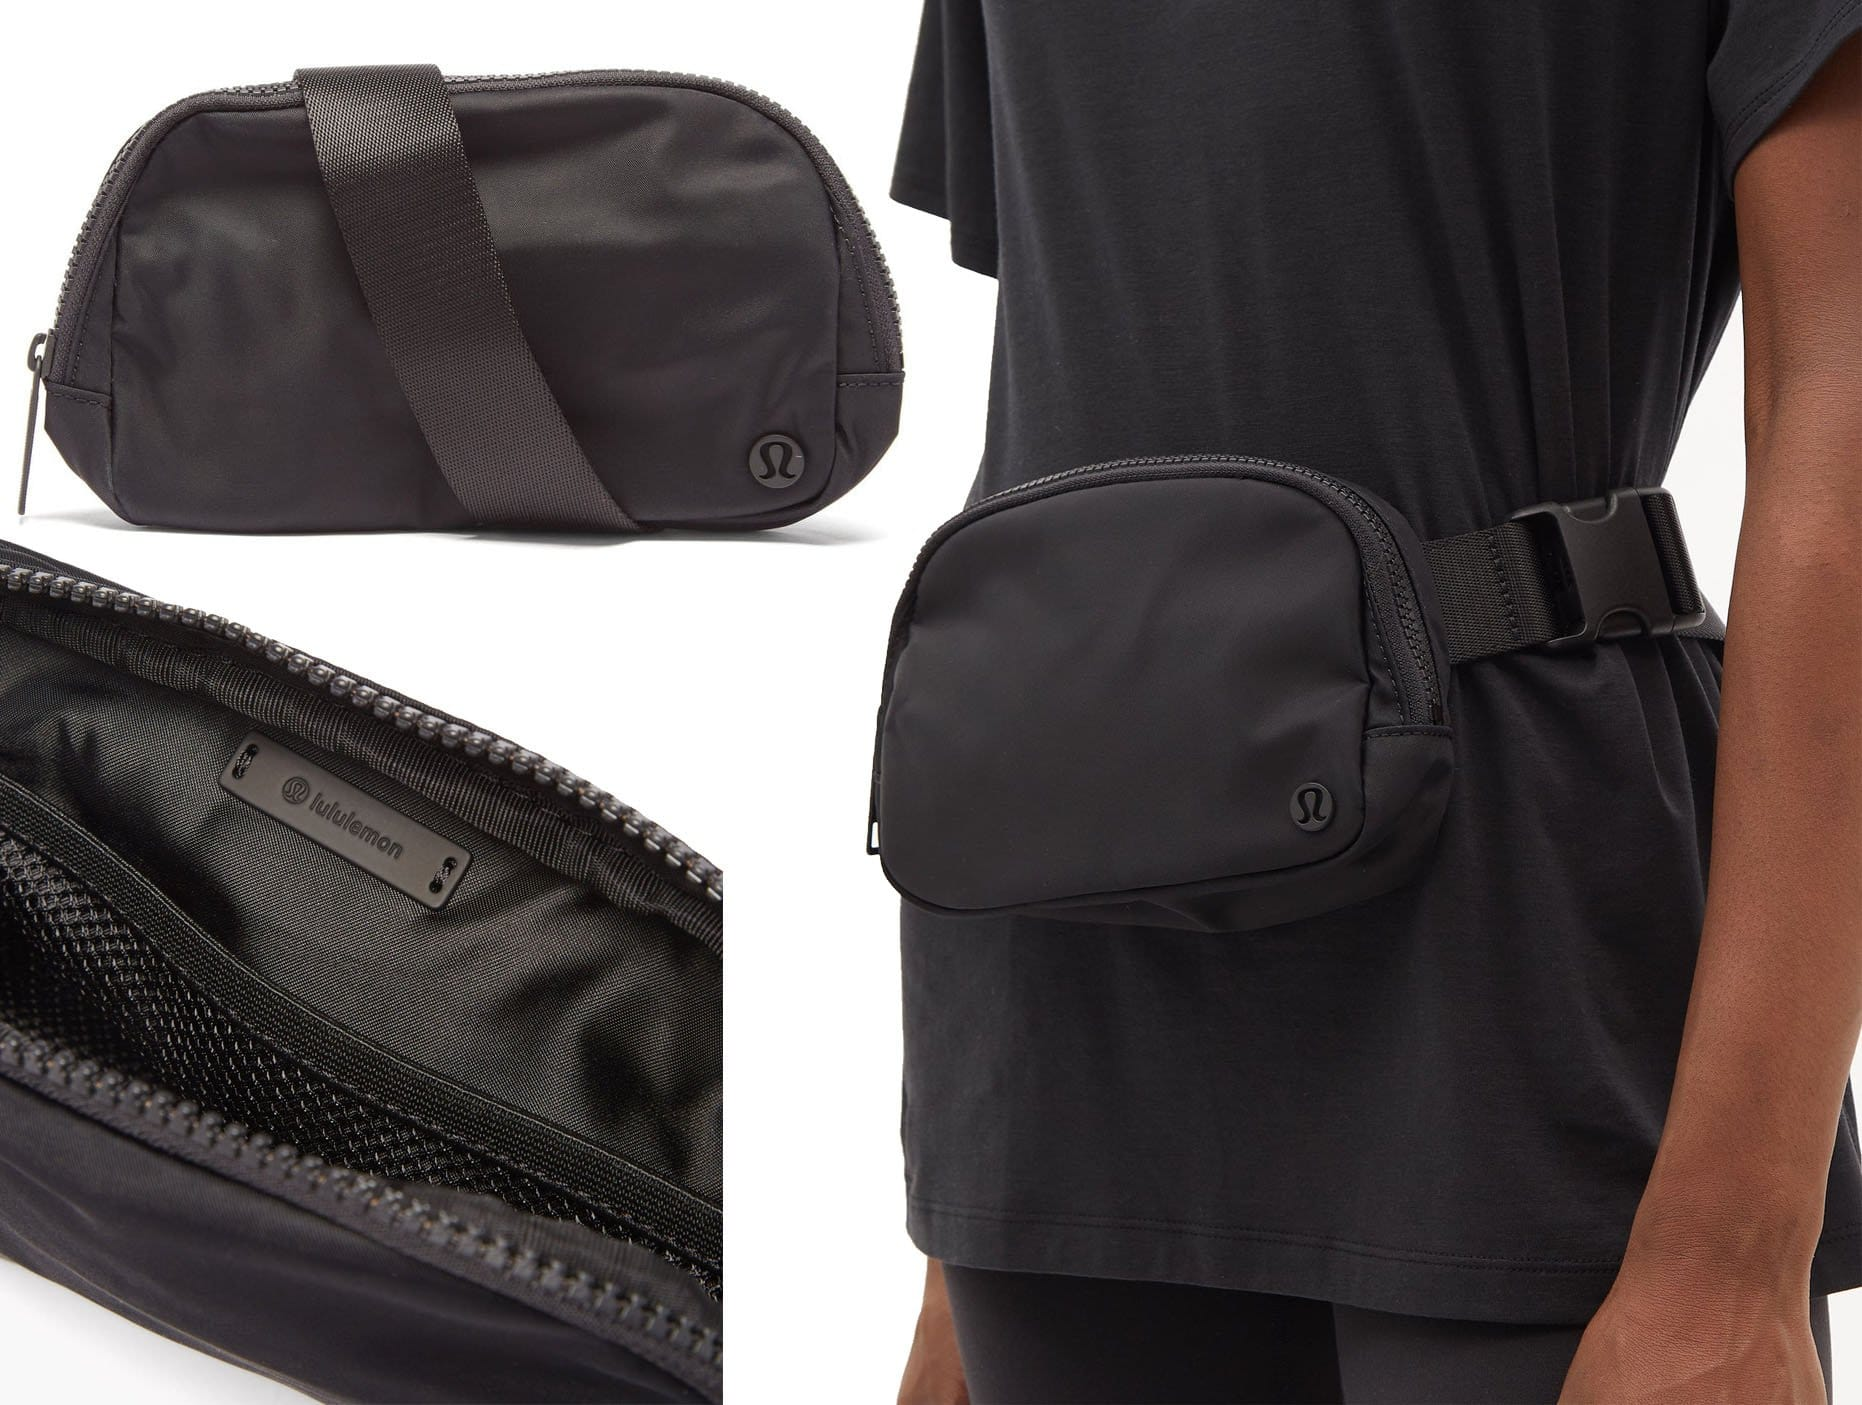 Lululemon's Everywhere belt bag is a practical complement to workout and off-duty outfits